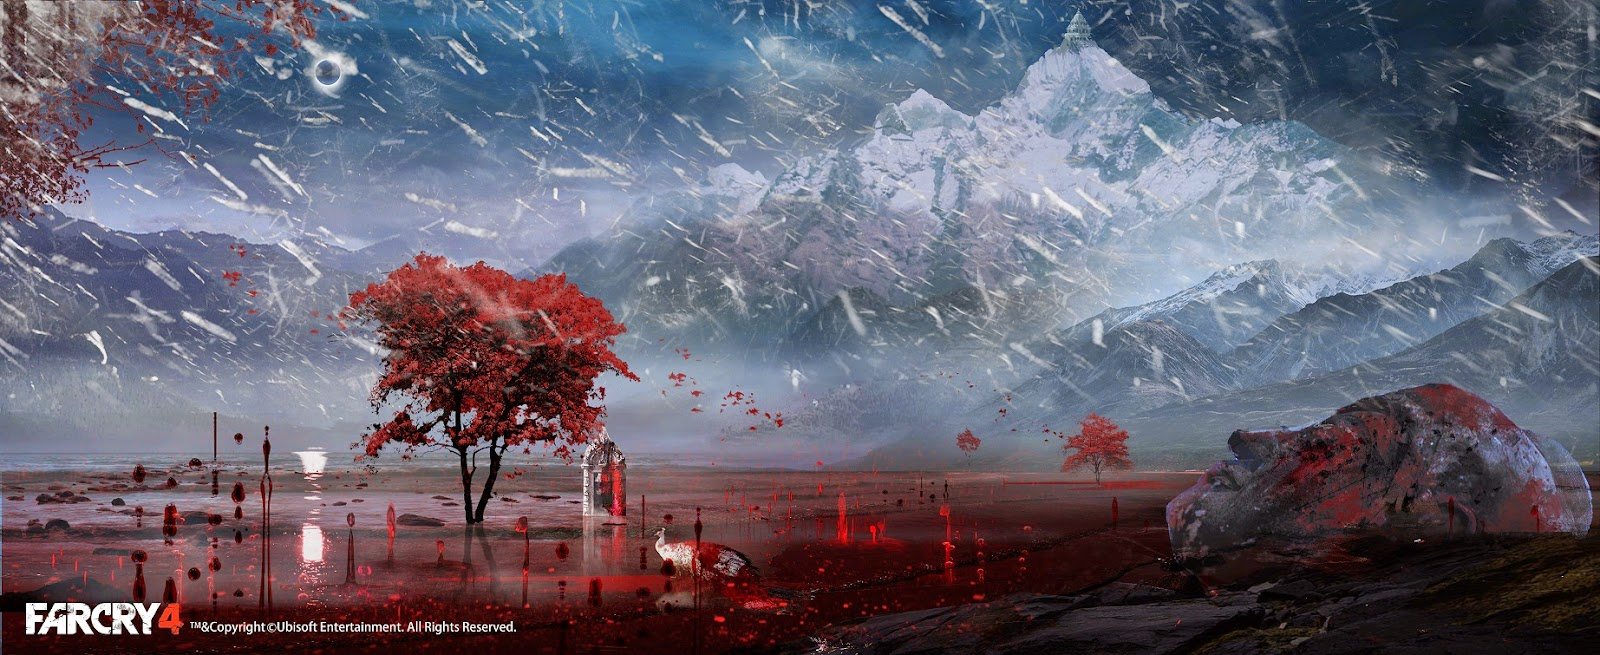 Far Cry 4 Concept Art Is The Reason Why It S A Beautiful Game Vg247